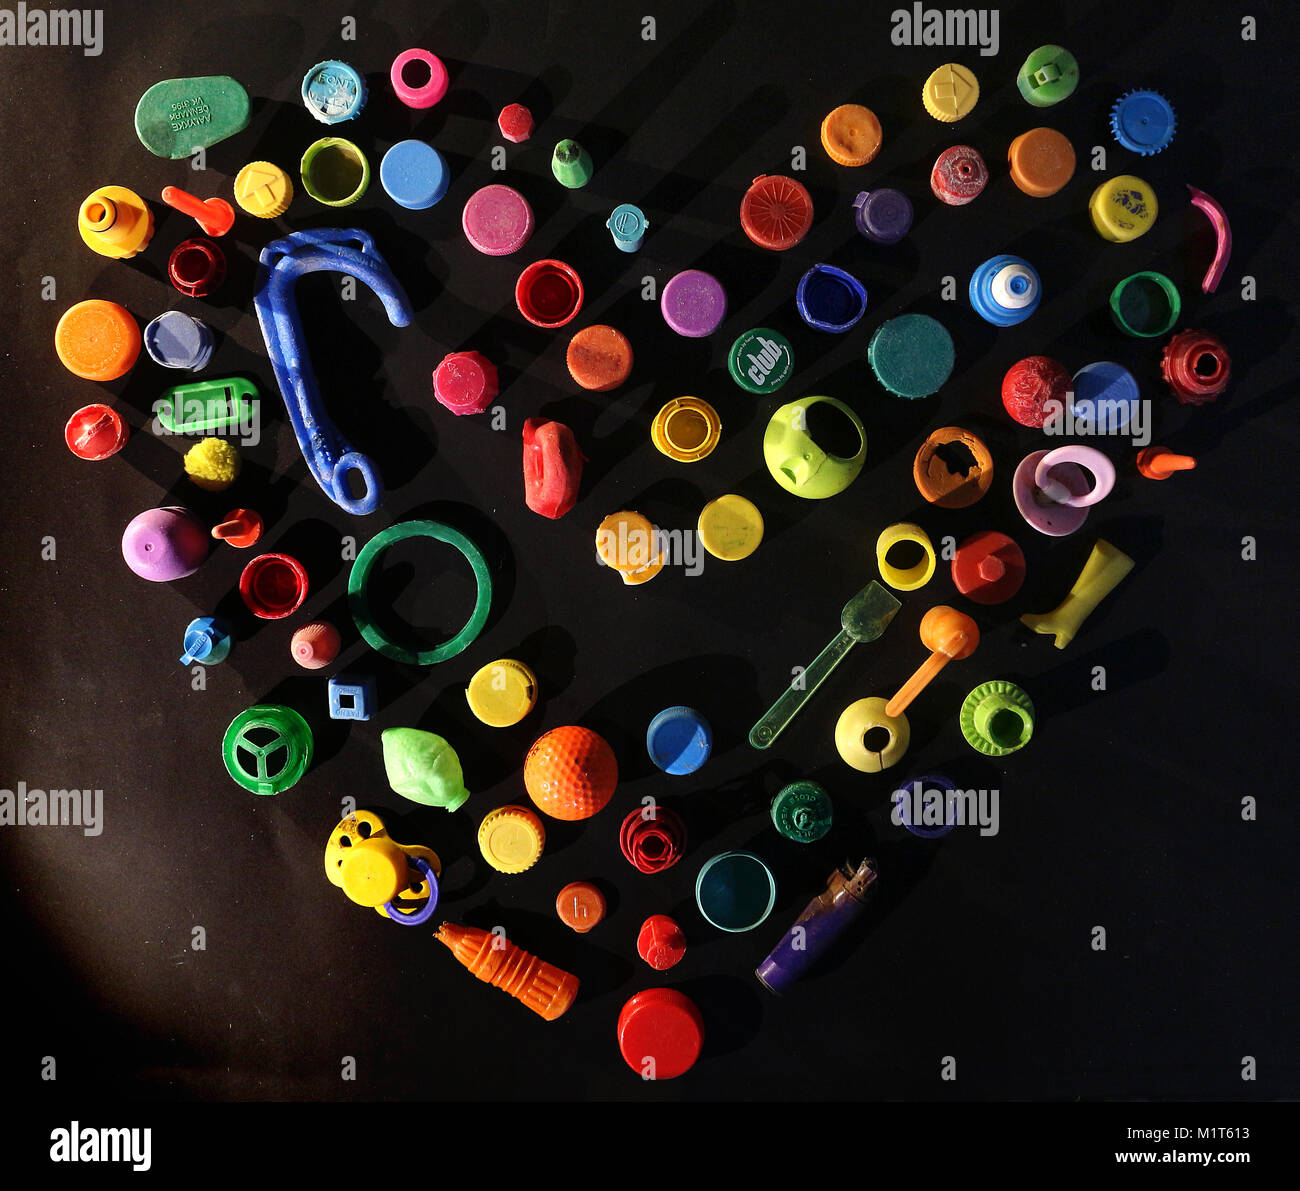 Colourful plastic heart of rubbish created by Giles W Bennett - Stock Image